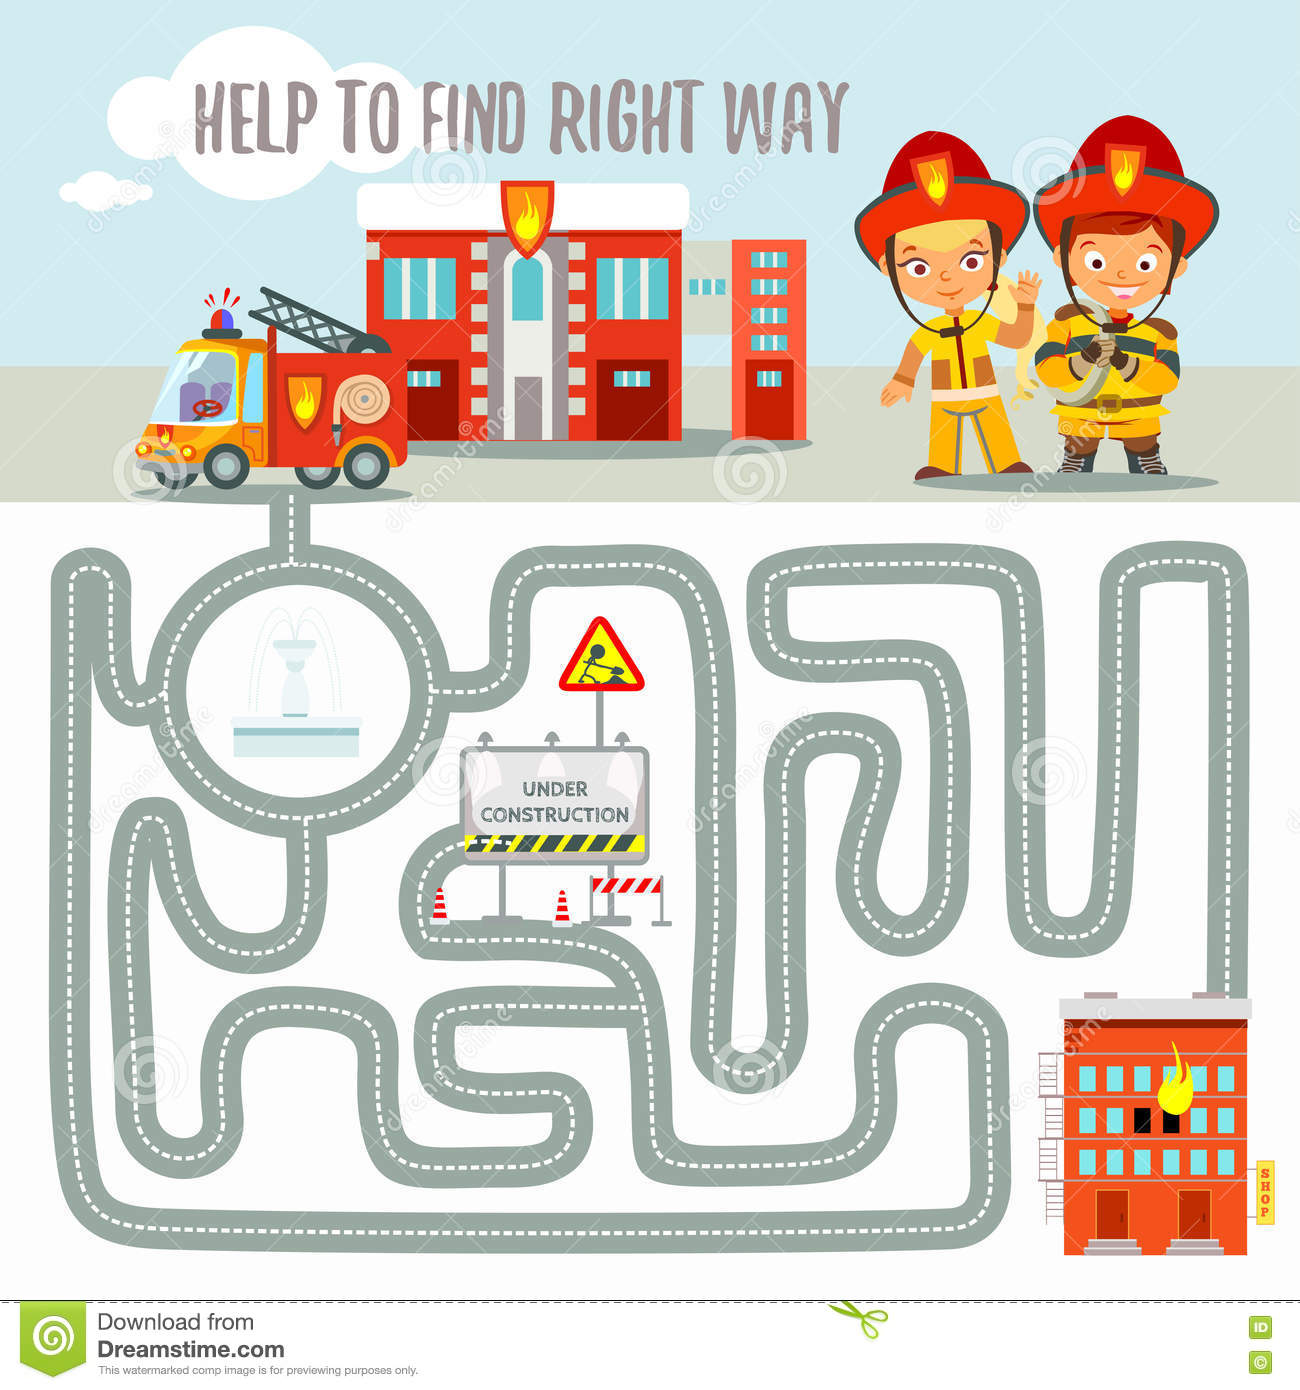 Ready Game Concept About Finding Right Way For Fire Engine  Stock